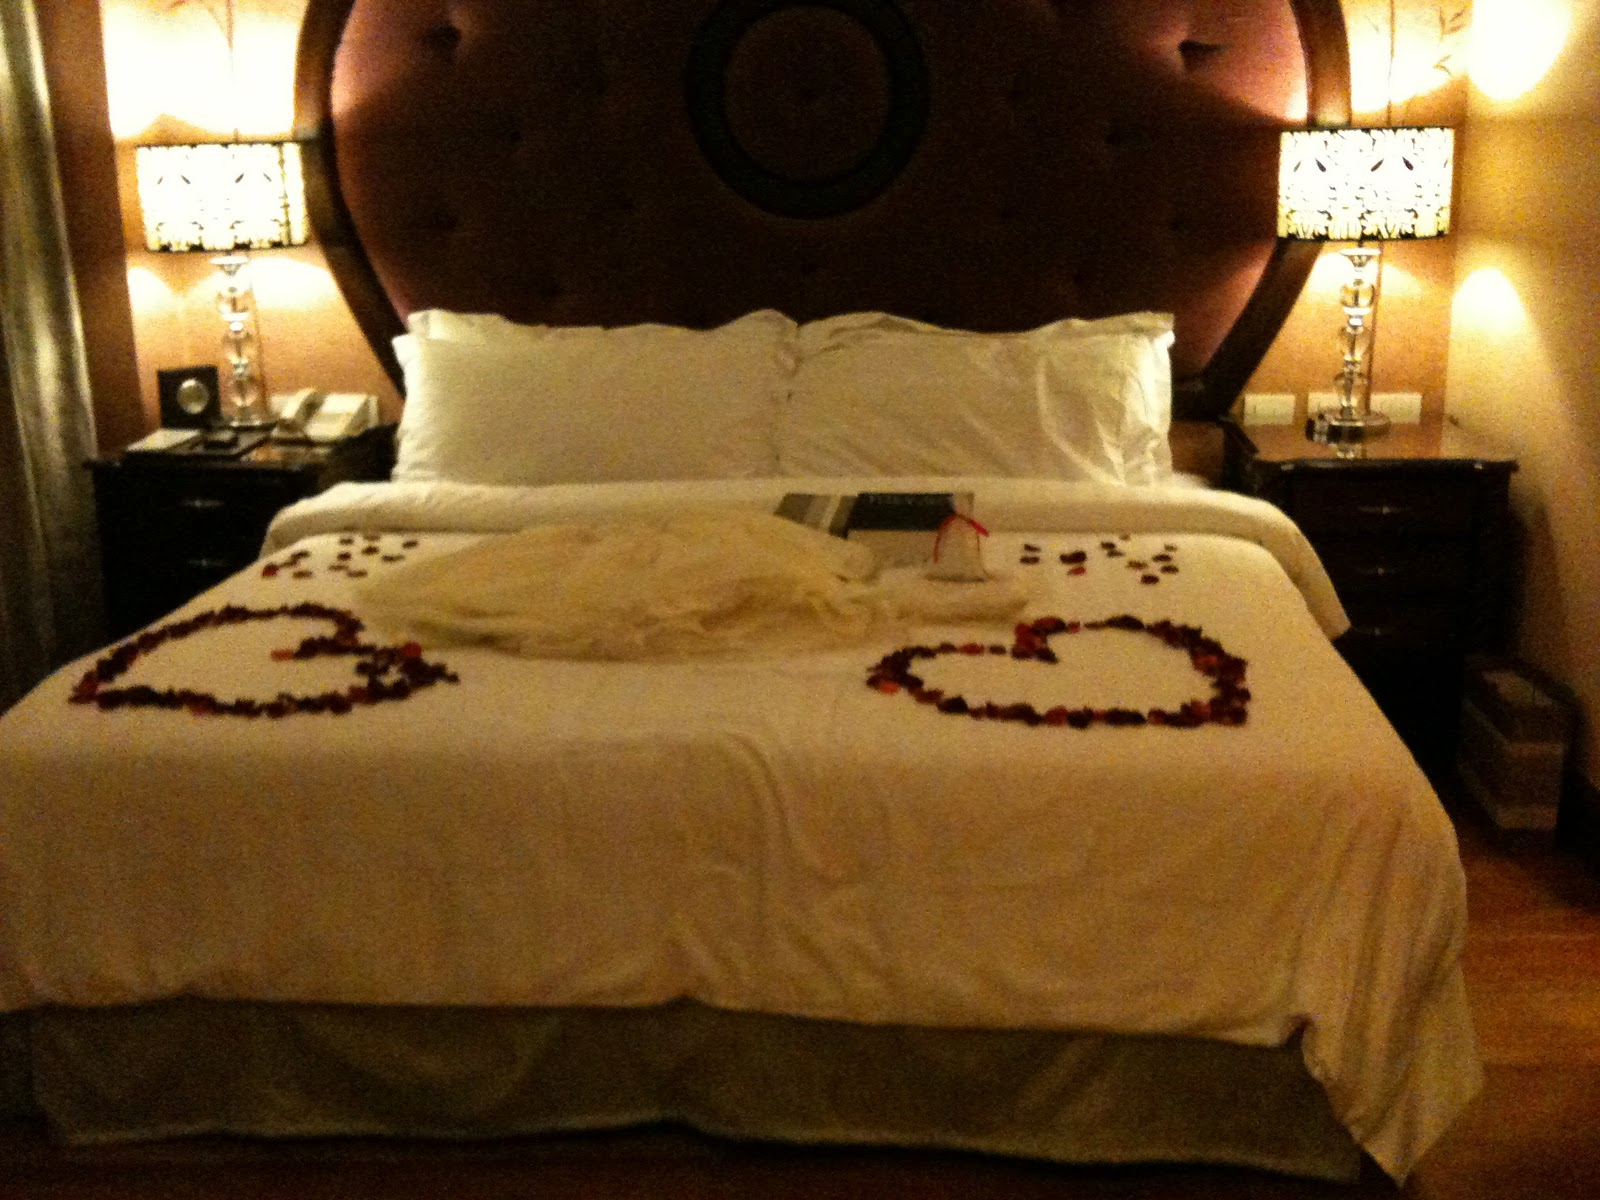 Fabulous Romantic Hotel Room Set Up Ideas 1600 x 1200 · 342 kB · jpeg